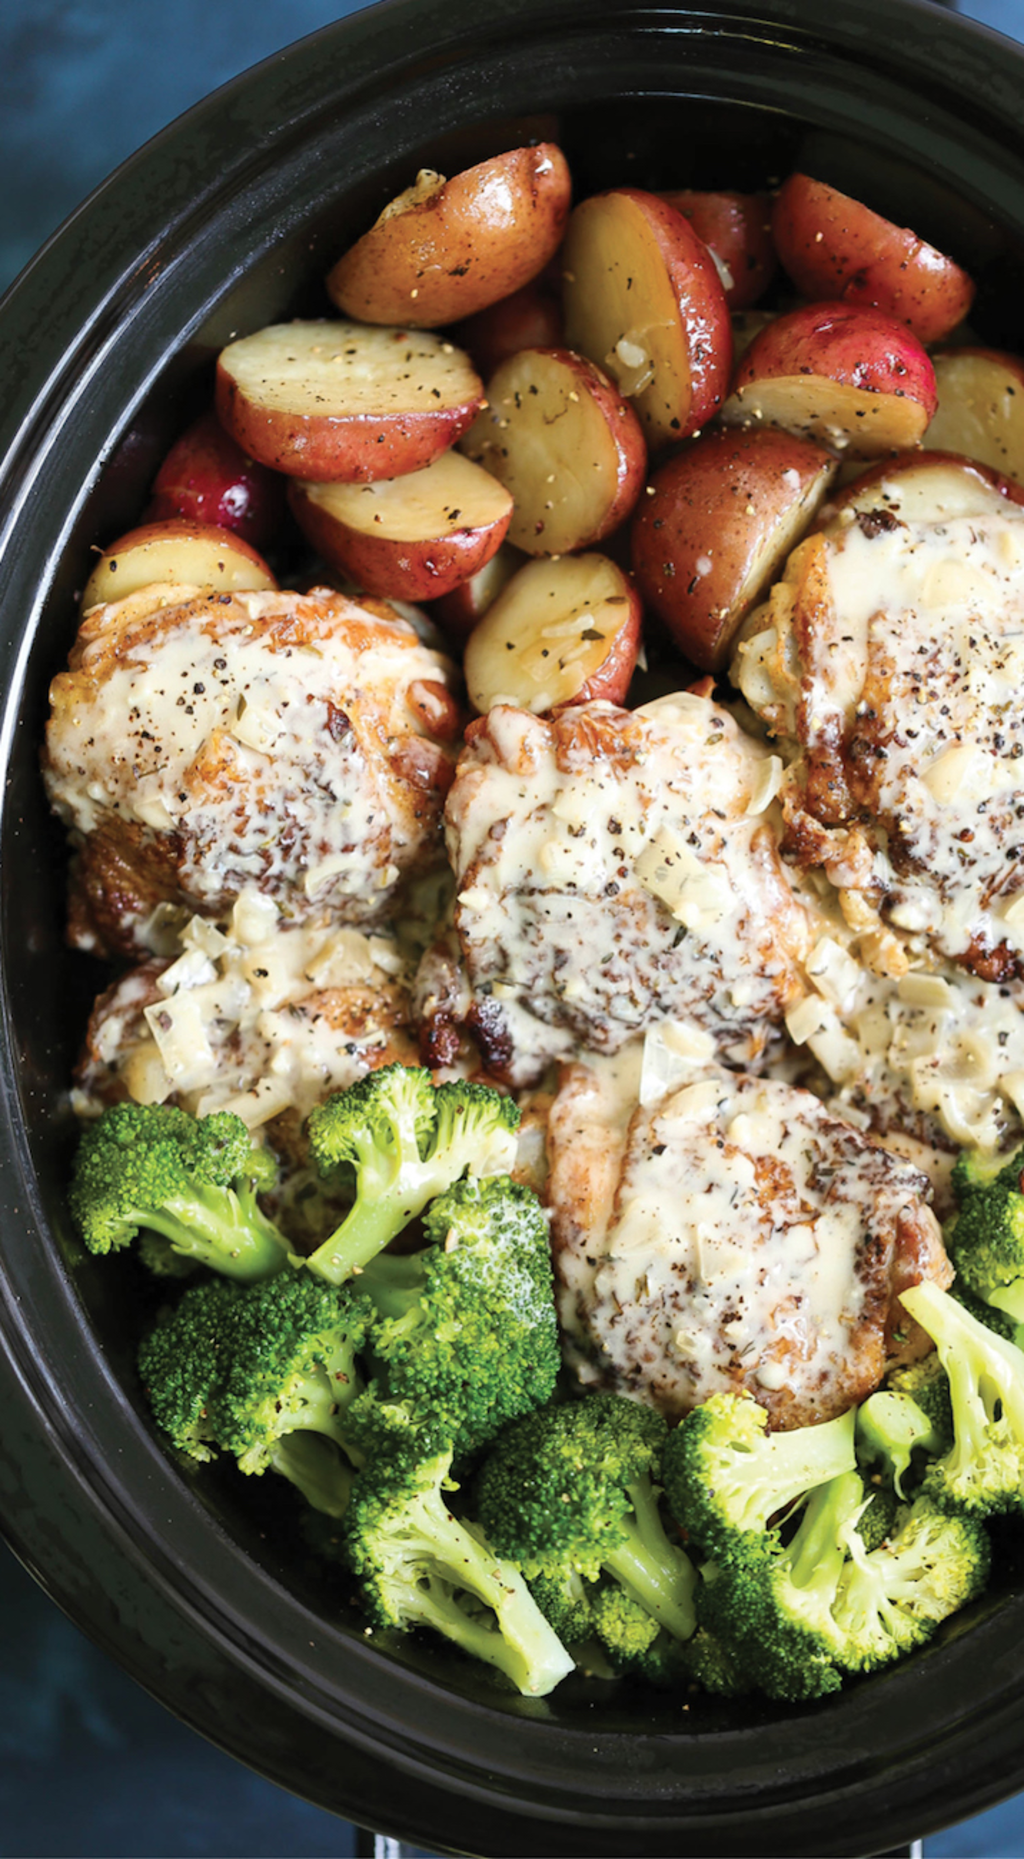 Make Creamy Garlic Chicken and Veggies in the Slow Cooker